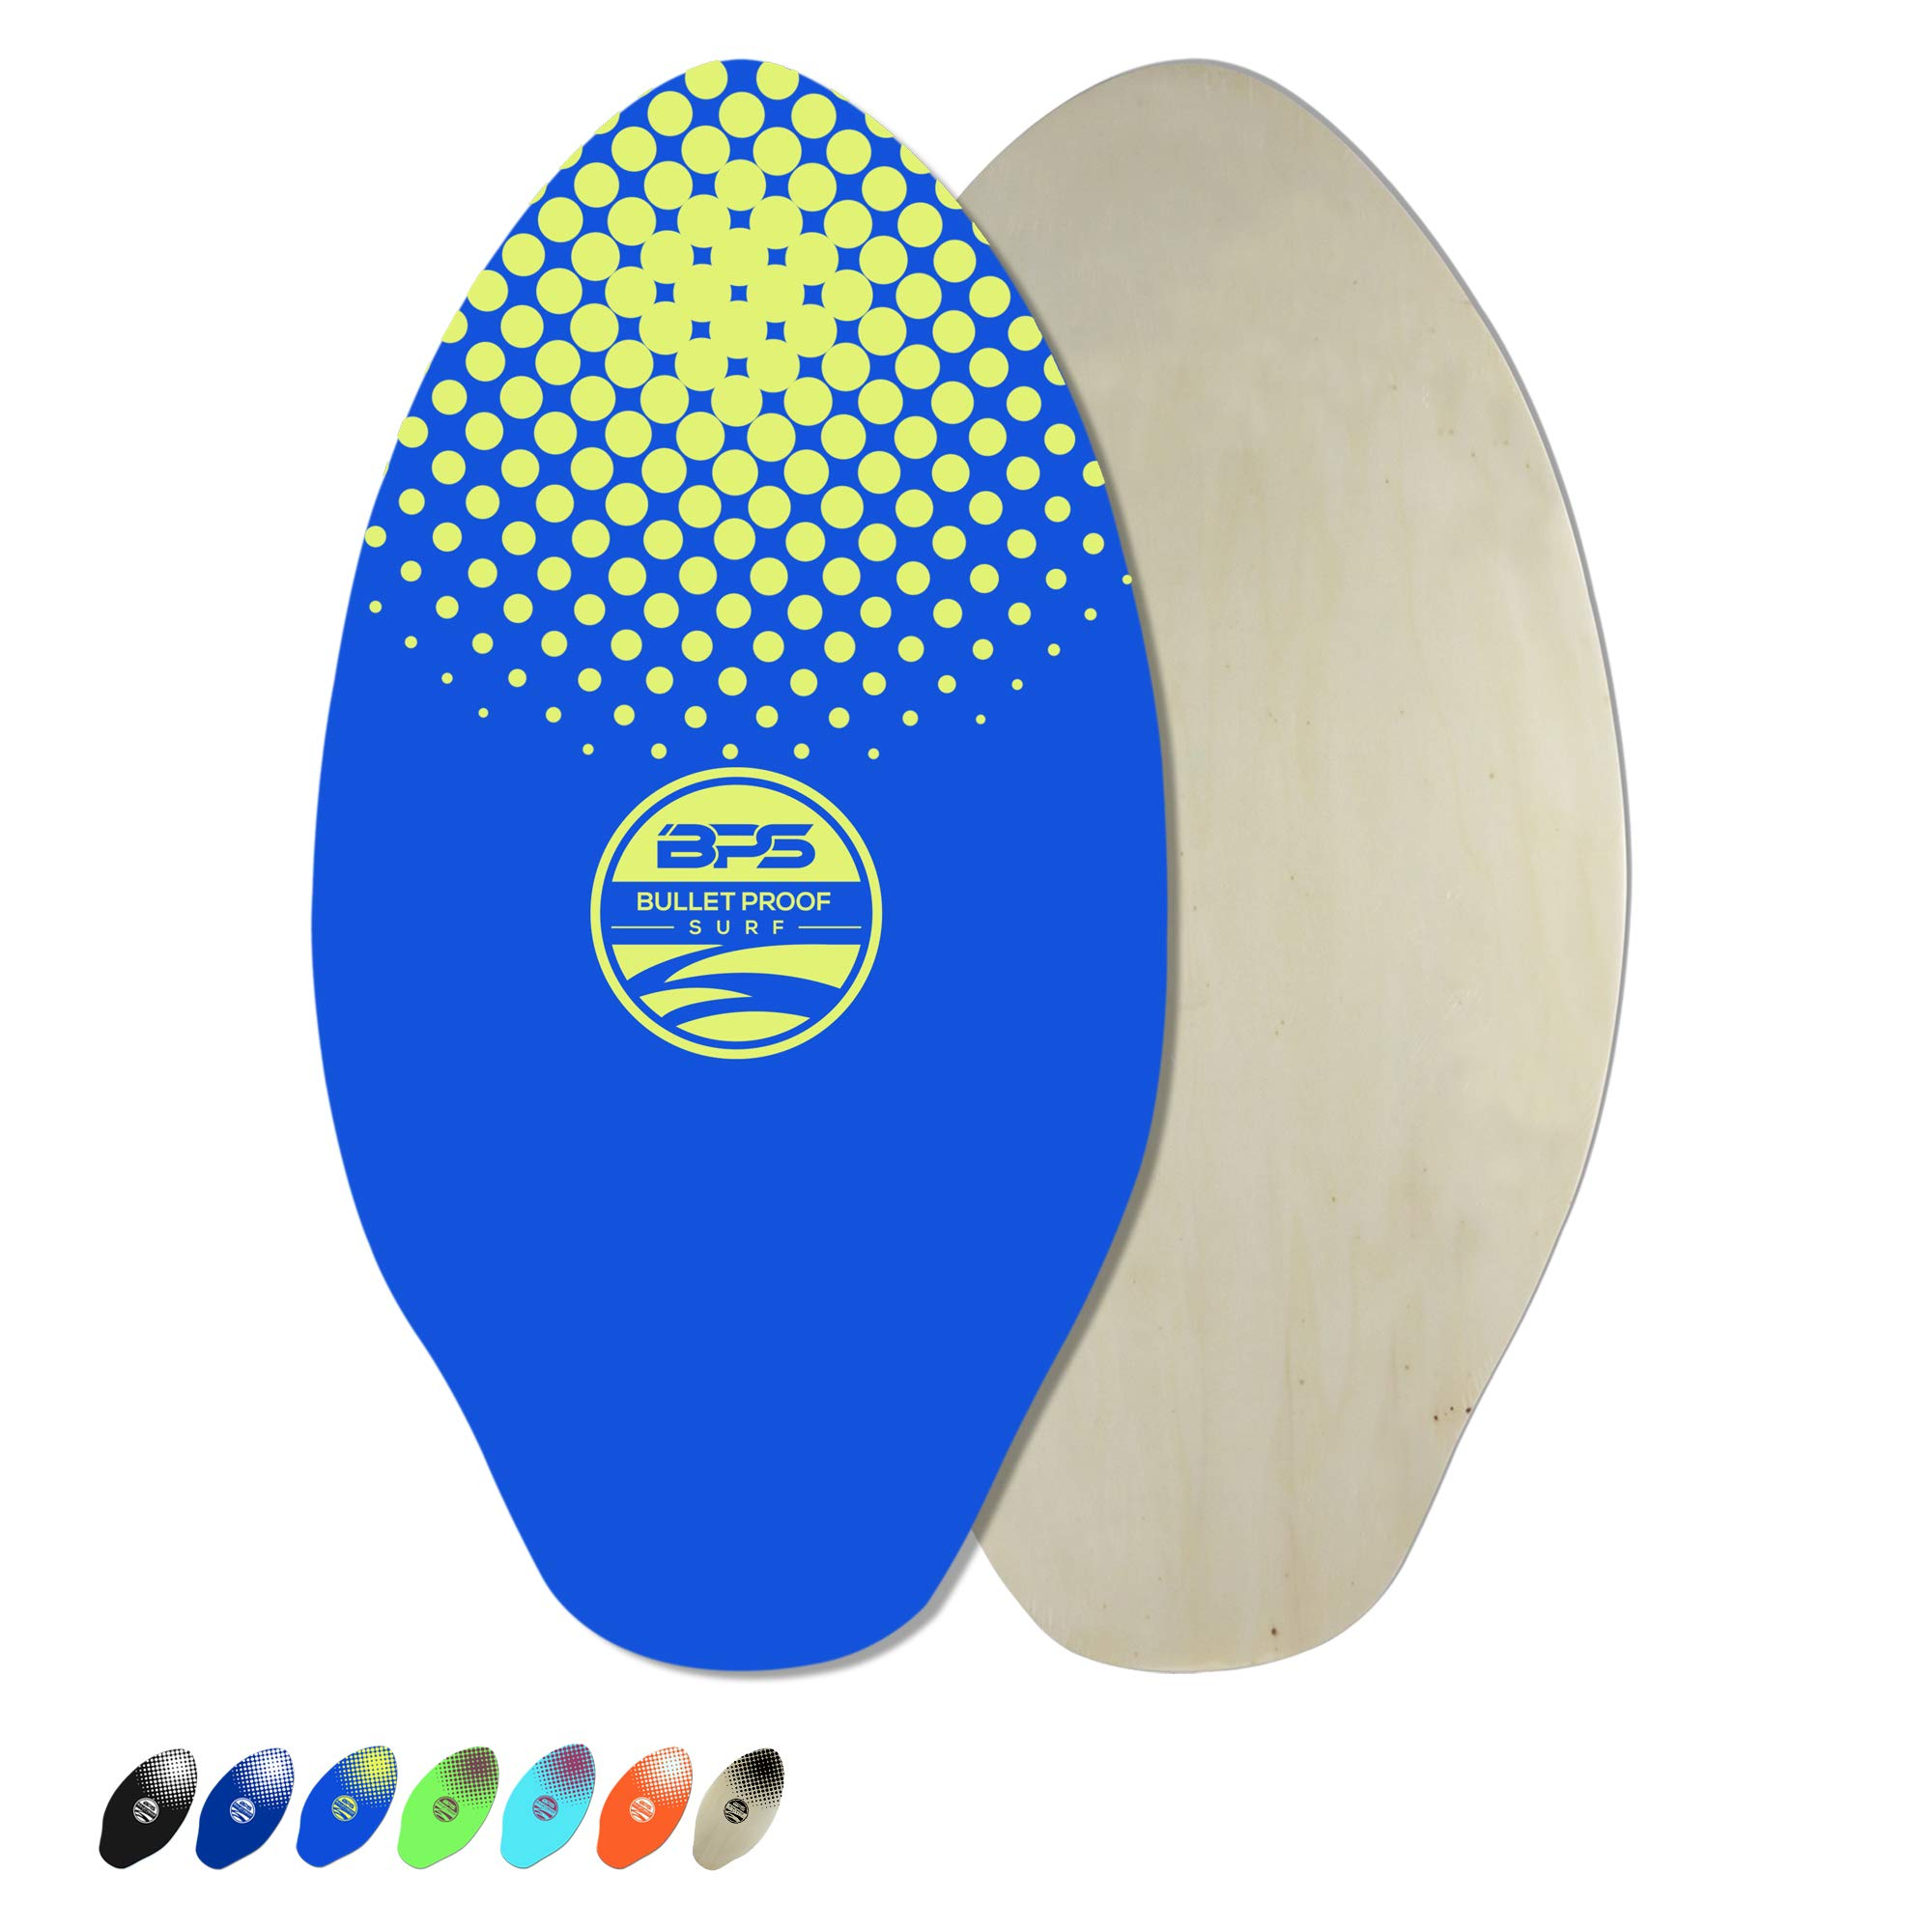 BPS 30 Inch Skimboard with Epoxy Coating - Wood Skimboard for Beach or Flatland - Skimboard for Kids and Adults - Board for Skimboarding (Blue with Yellow Accent) by BPS